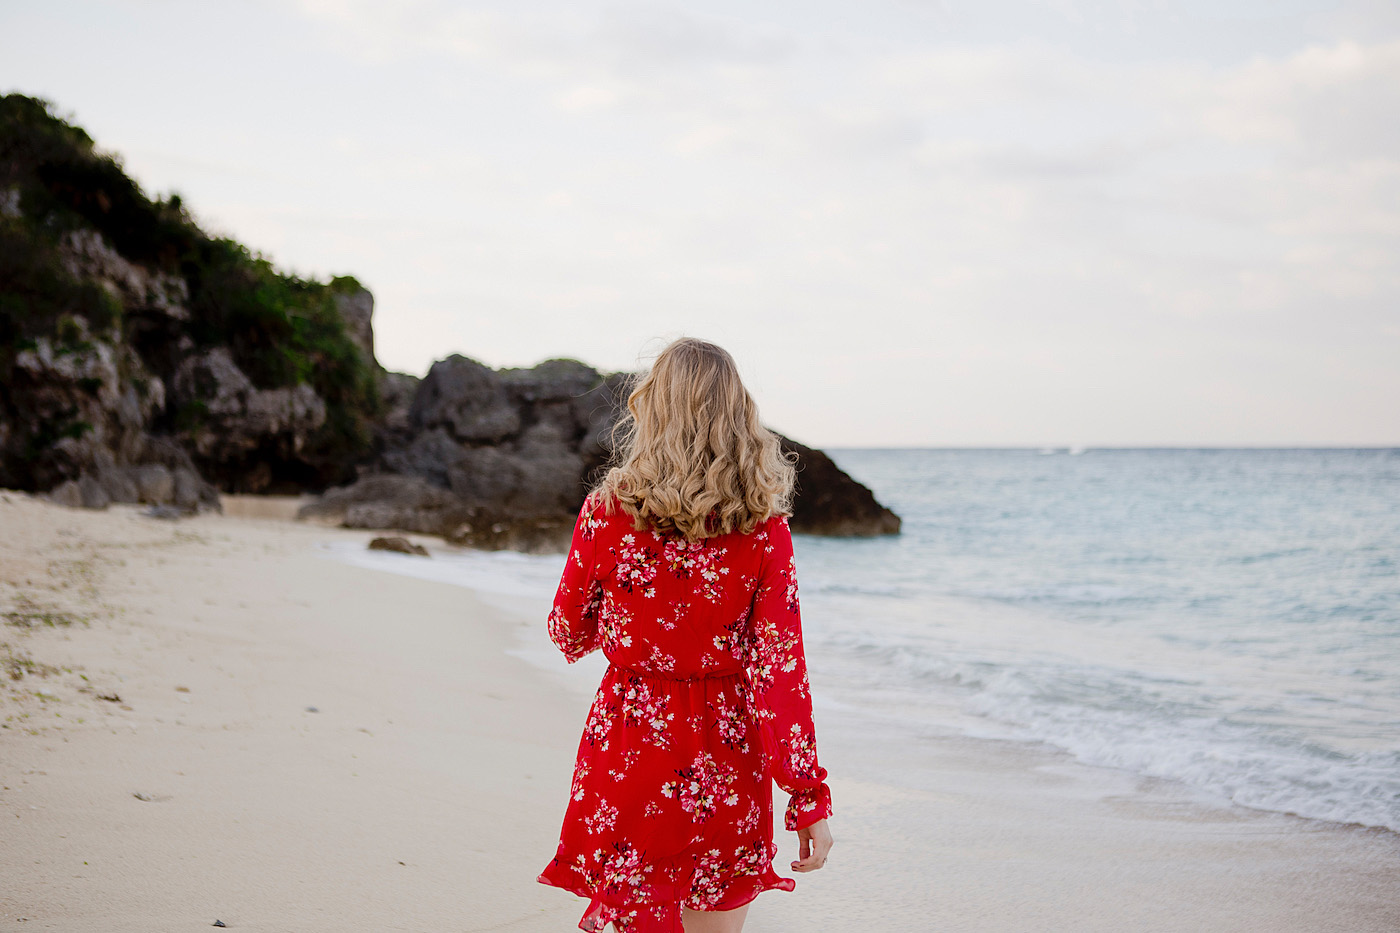 https://thegoldenbun.com/wp-content/uploads/2017/03/the-golden-bun-red-flower-chiffon-dress-HM-_-okinawa-beach4.jpg